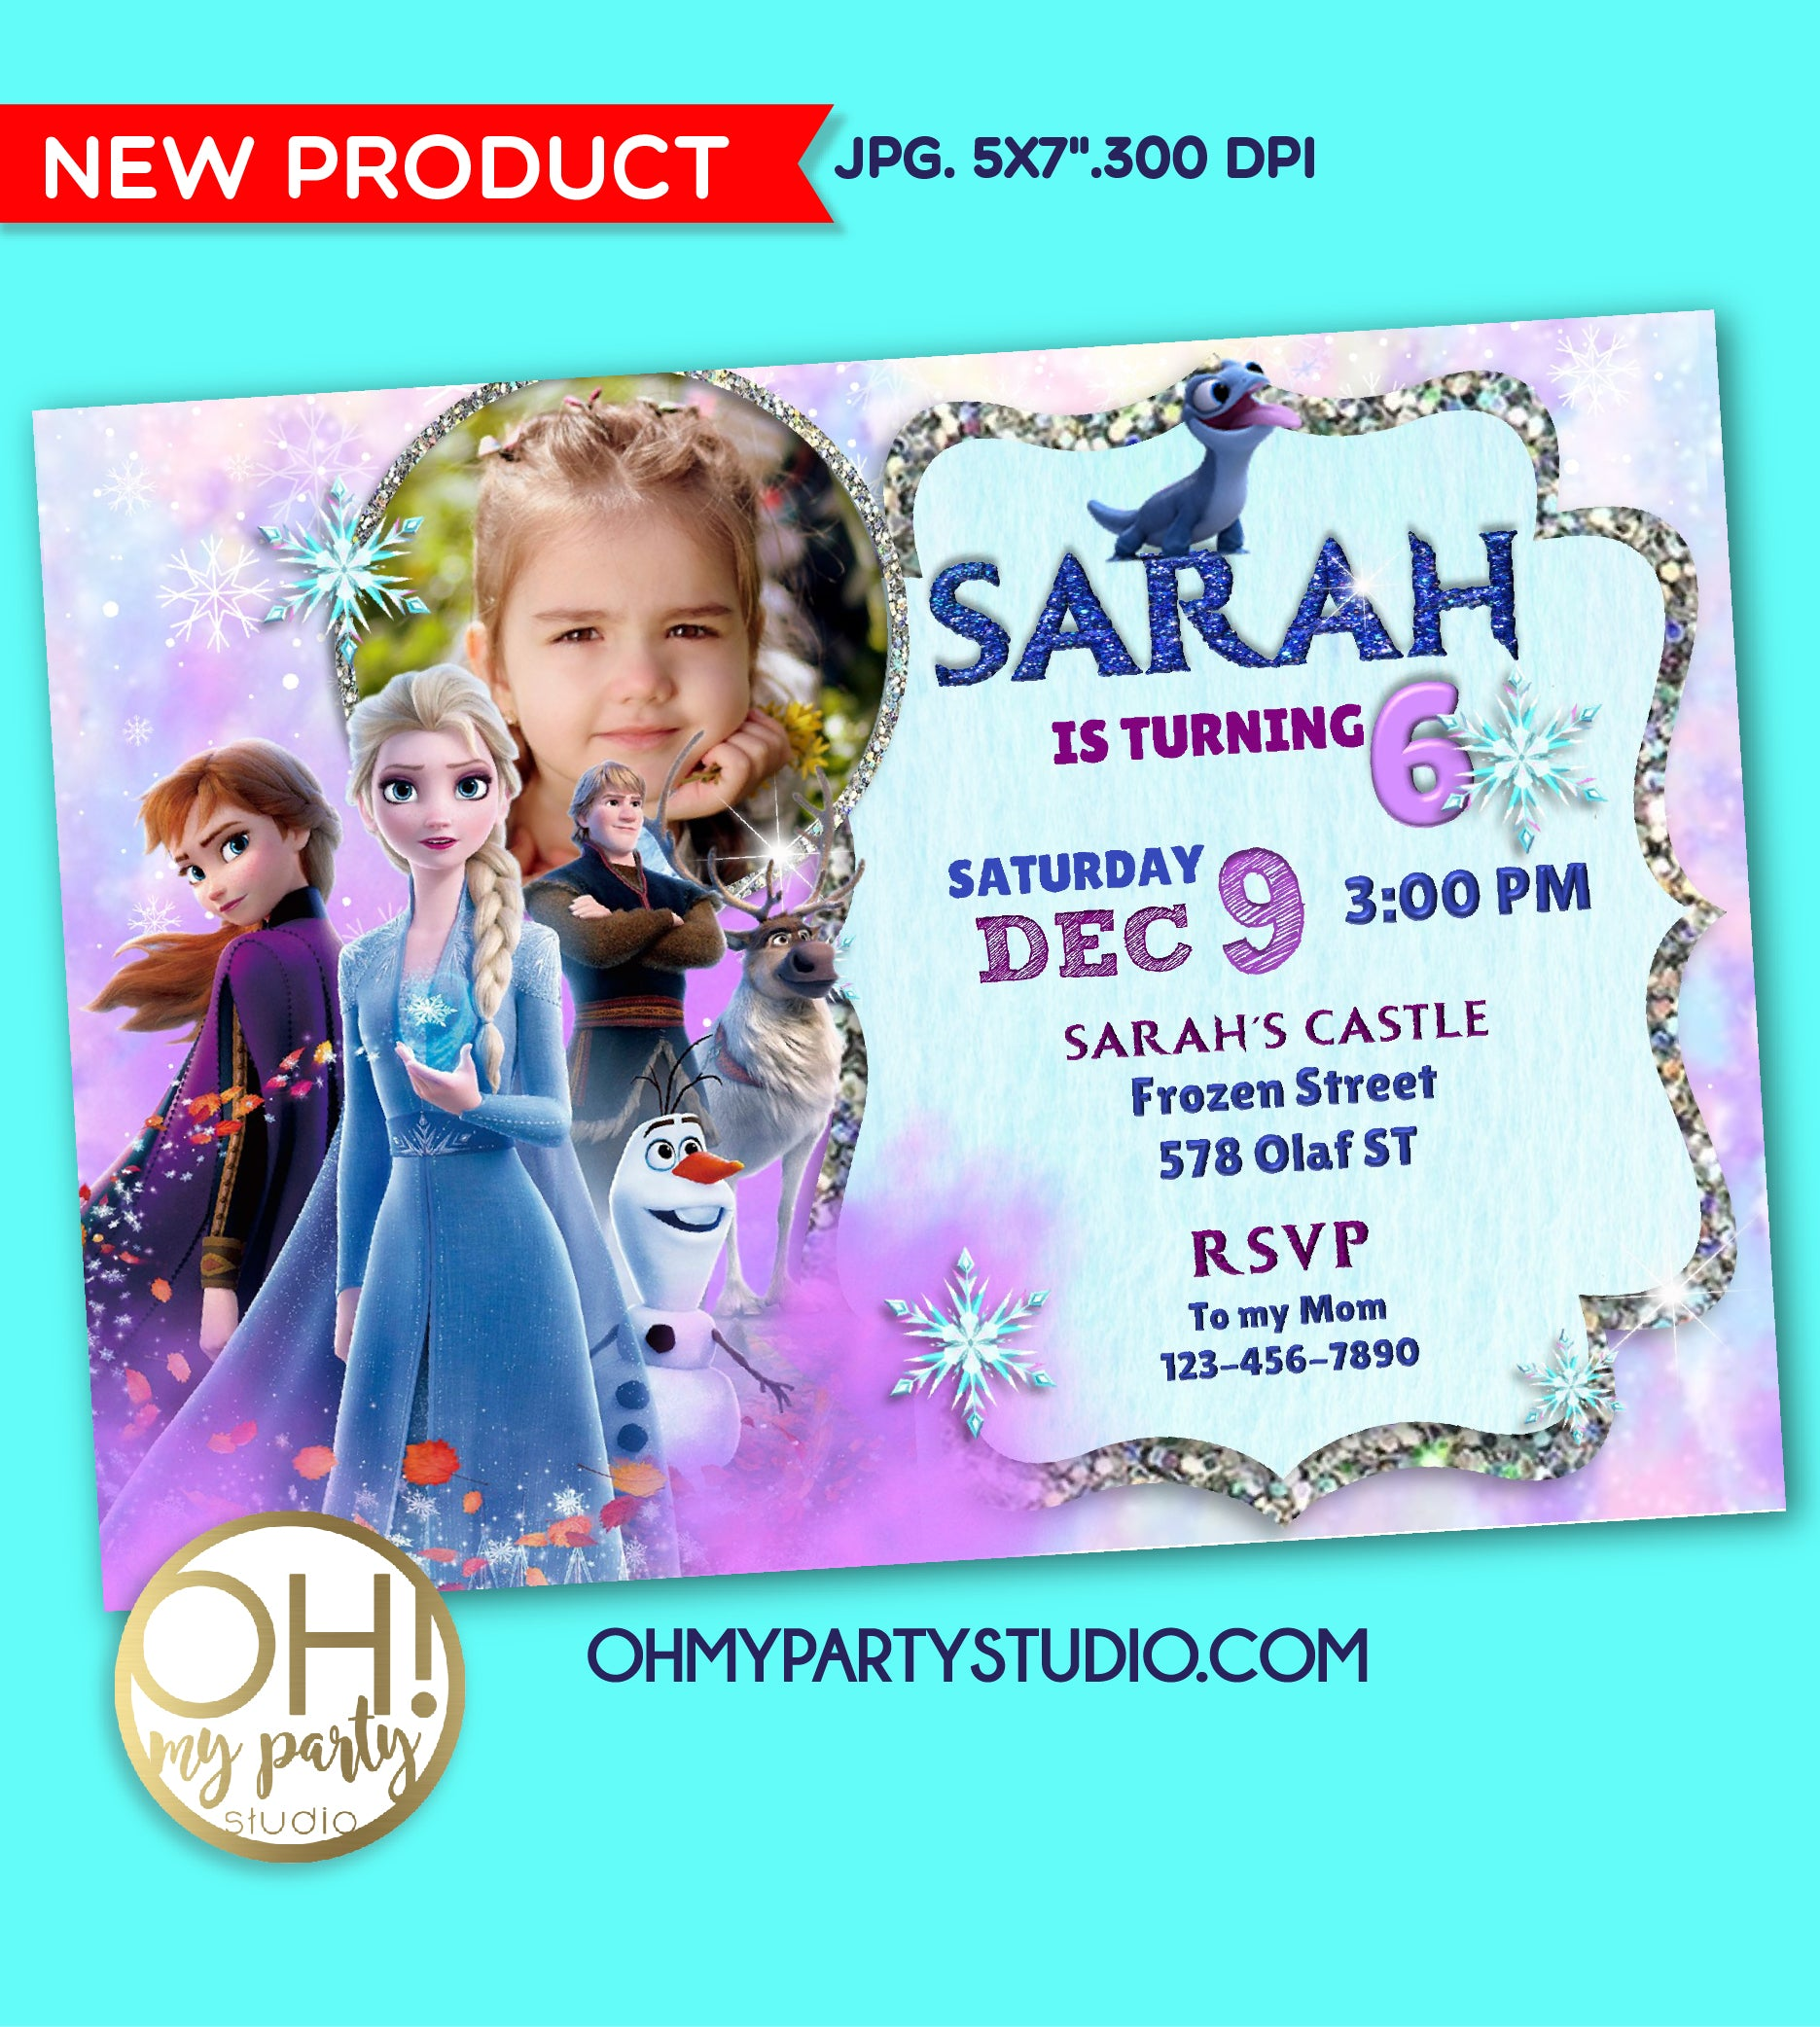 FROZEN 2 BIRTHDAY PARTY, FROZEN 2 INVITATION, FROZEN 2 INVITATIONS, FROZEN 2 BIRTHDAY, FROZEN 2 PARTY, FROZEN 2 PARTY INVITATION, FROZEN 2 PARTY IDEAS, FROZEN 2 PARTY DECORATION, FROZEN 2 INVITE, FROZEN 2 CARD, FROZEN 2 DIGITAL INVITATION, FROZEN 2 INVITATION DIGITAL, FROZEN 2 INVITACIÓN, FROZEN 2 INVITACIÓN DIGITAL